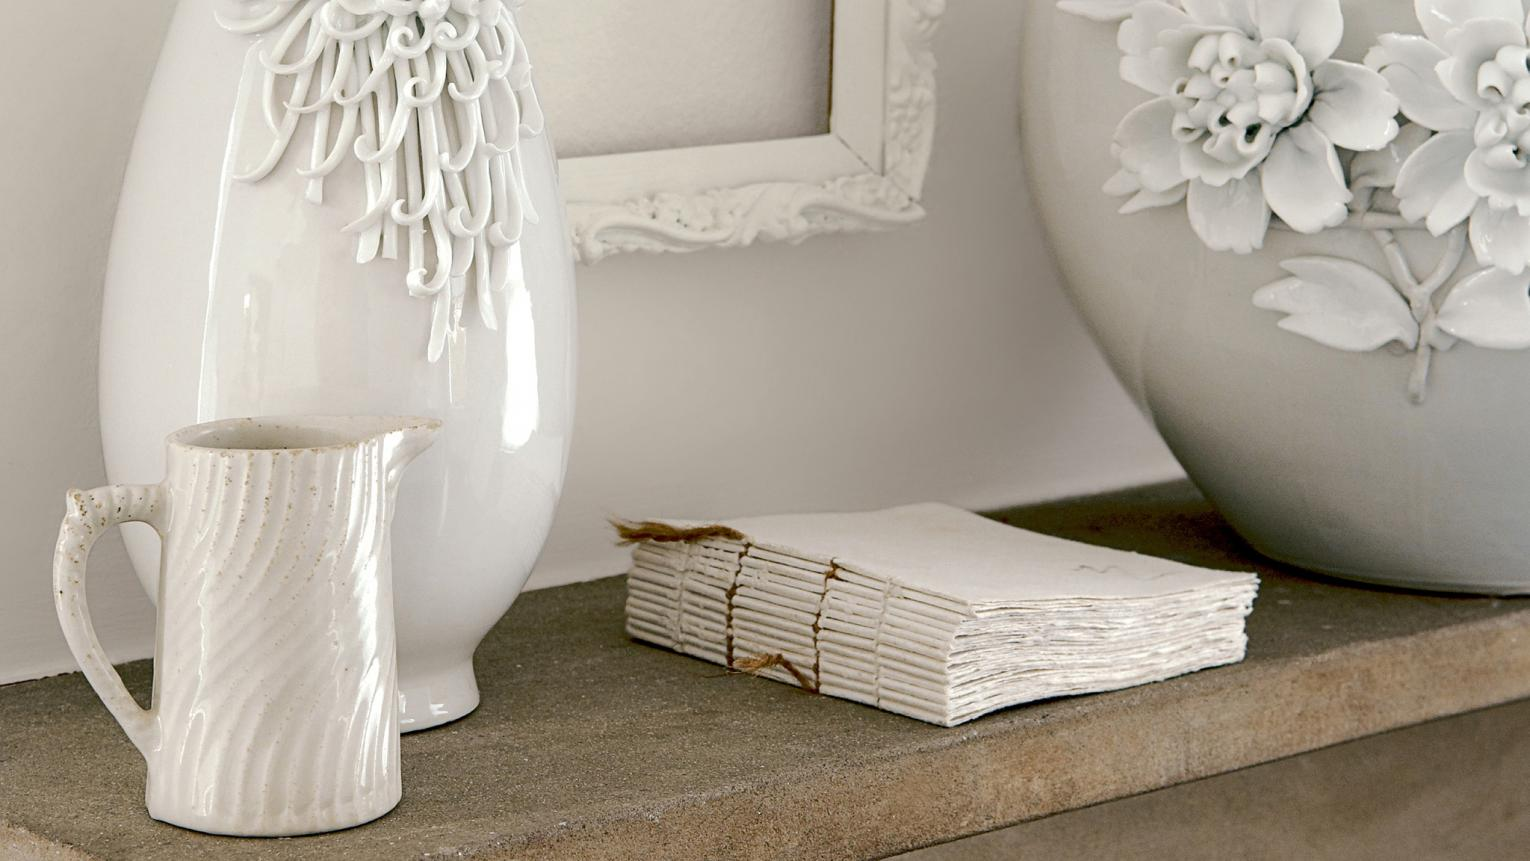 Highlight textures with a pared-back palette of off-whites.